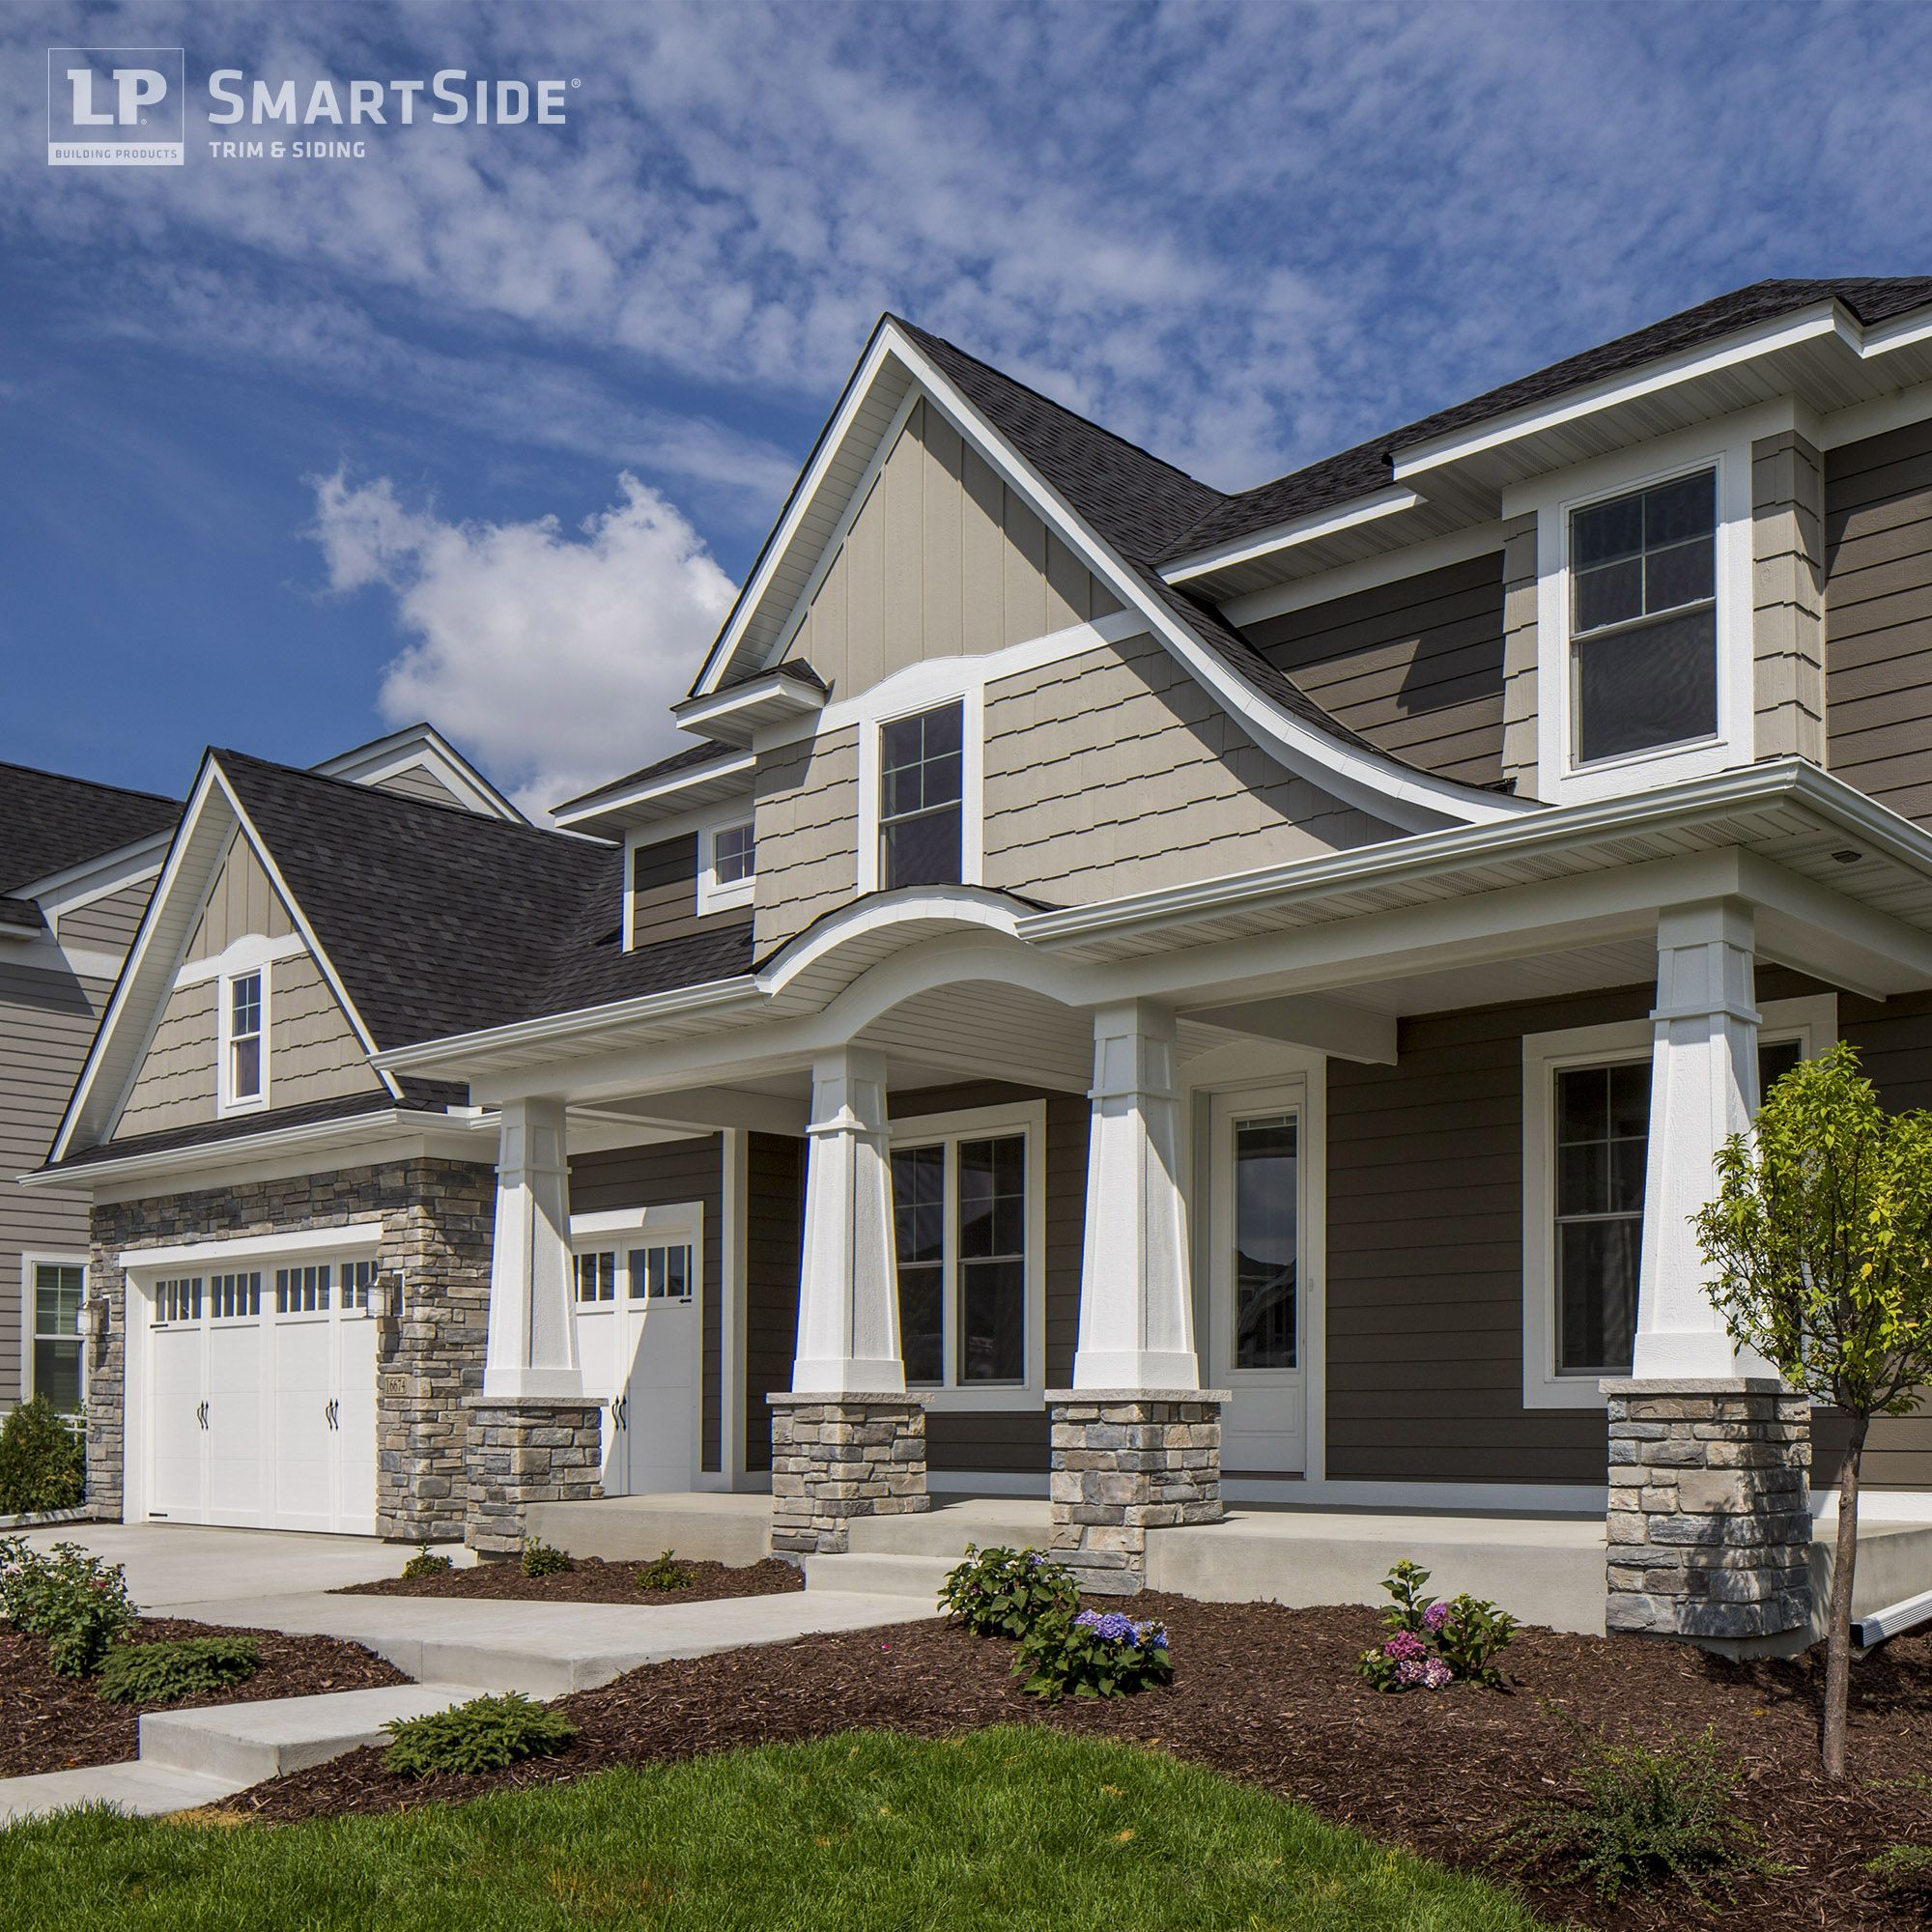 Multiple styles of lp smartside siding stone cladding for Lp smartside prefinished siding colors